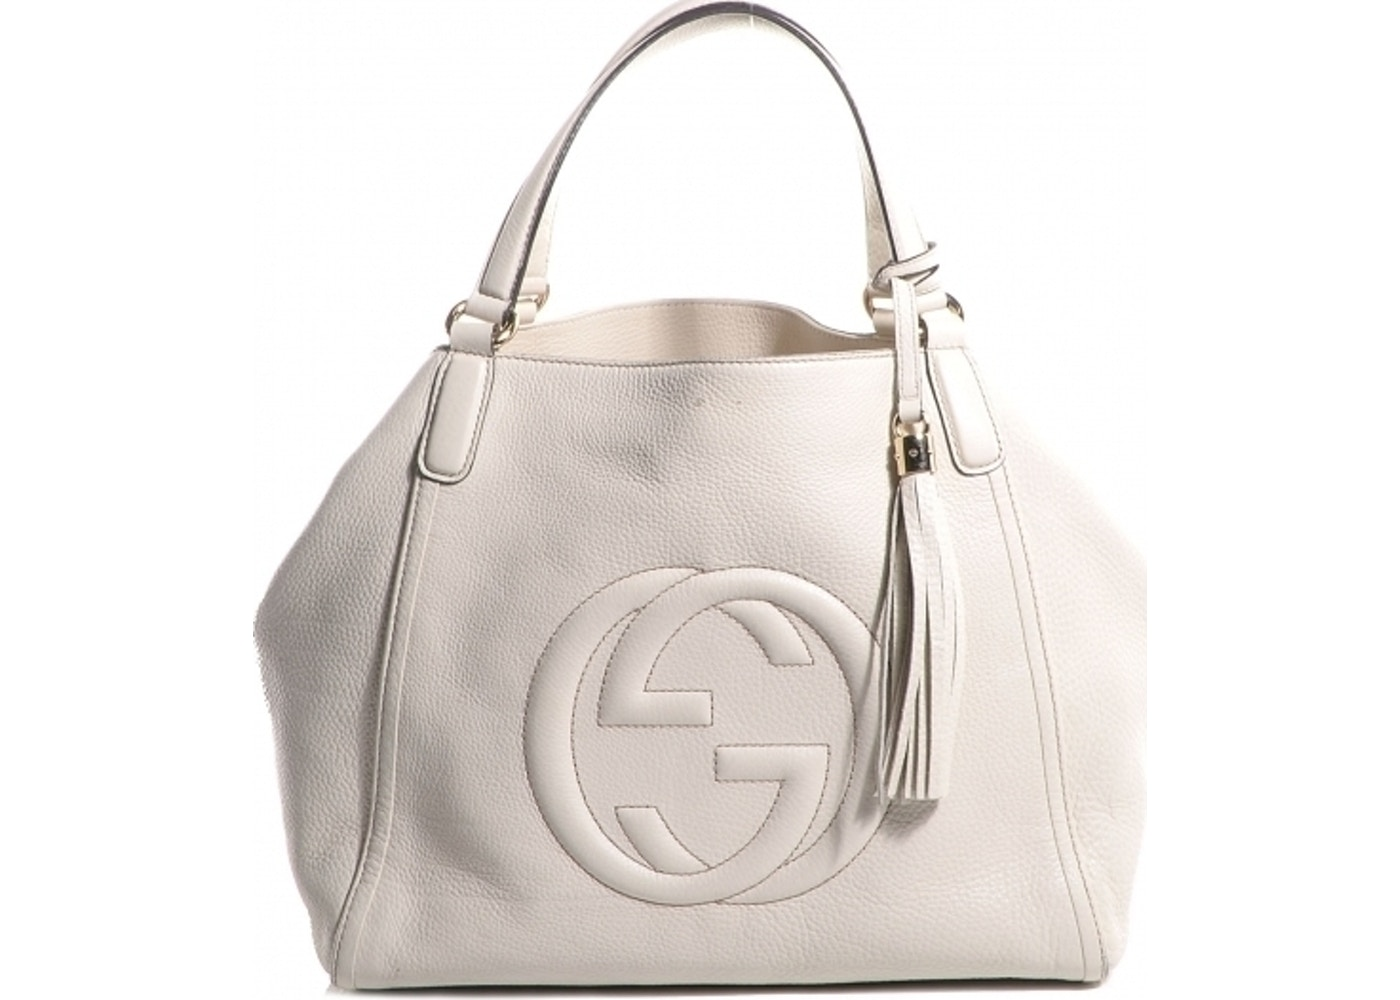 30017767dba0 Gucci Soho Tote Medium Off White. Medium Off White